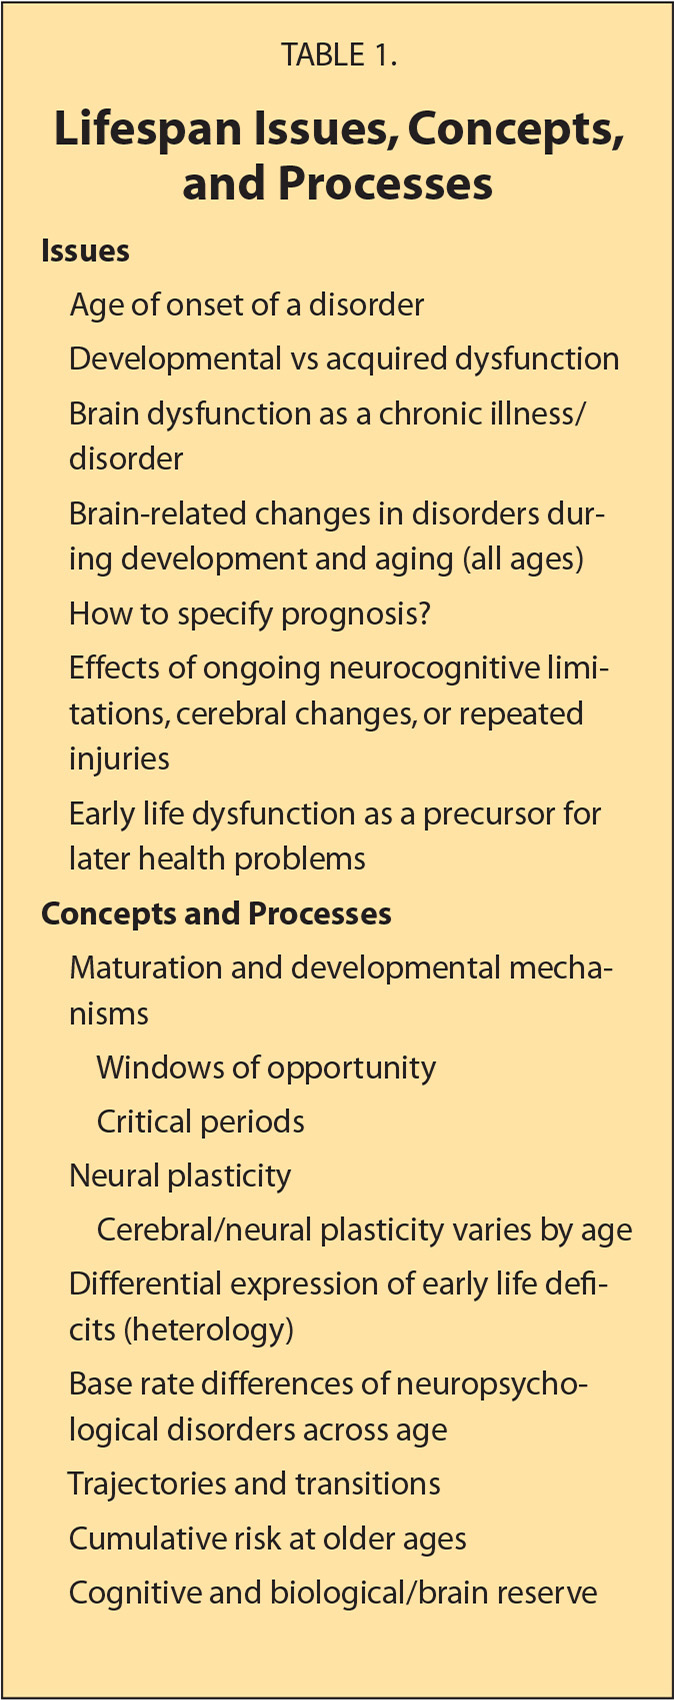 Lifespan Issues, Concepts, and Processes